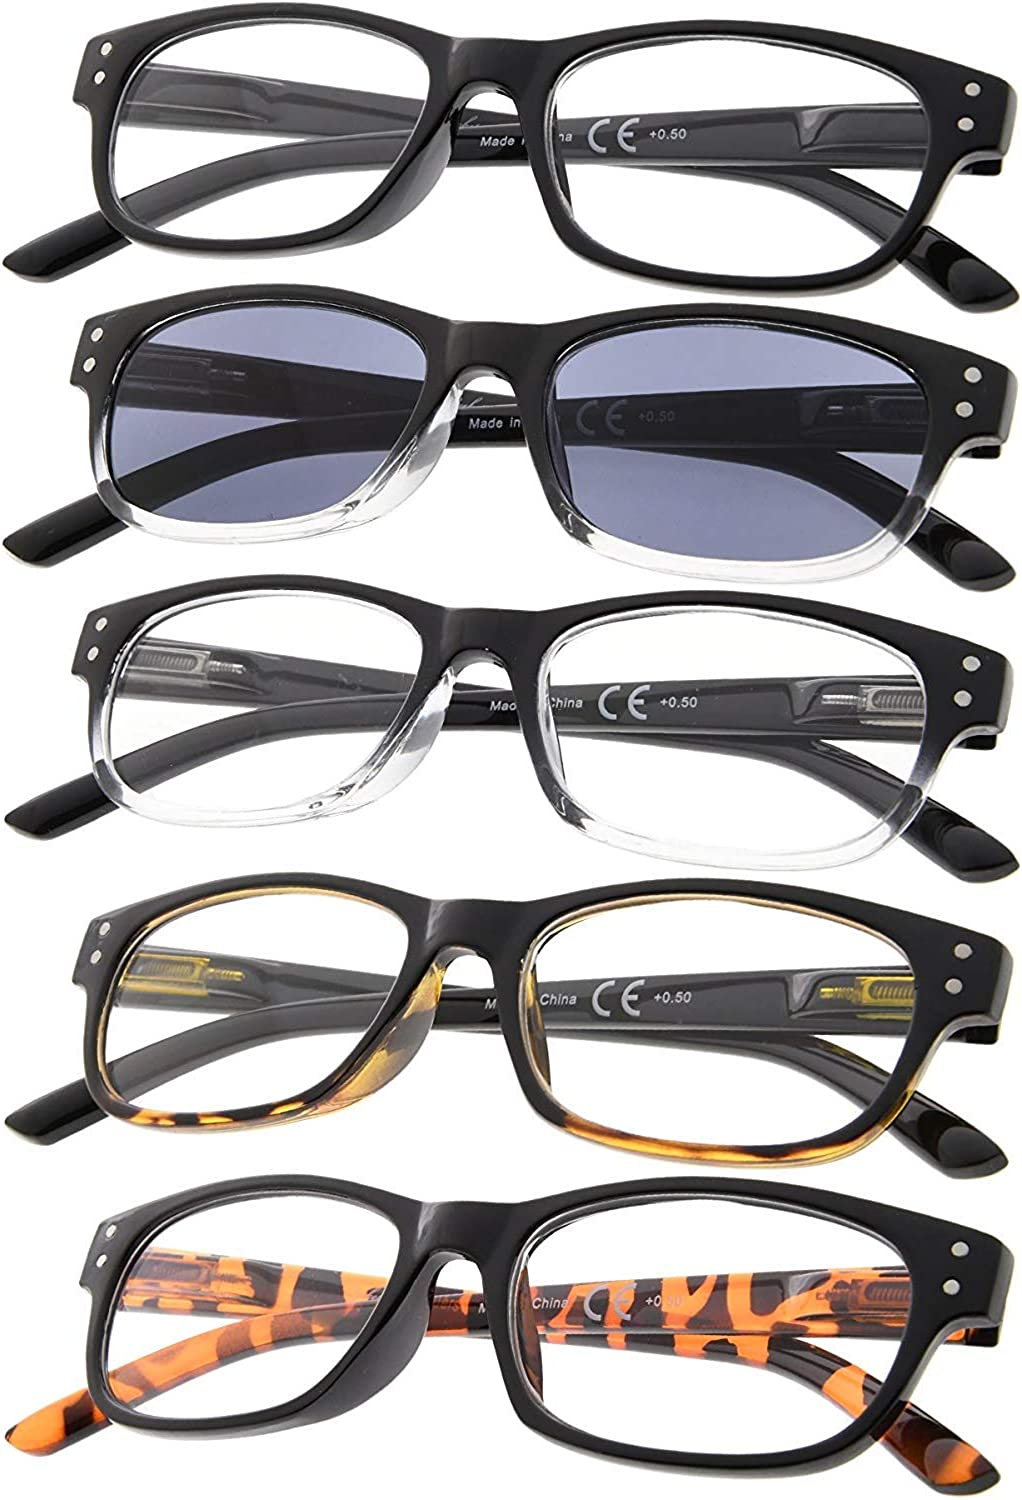 Mail order cheap 5-pack Vintage Reading Glasses with Hinges trust Spring Sungl Includes